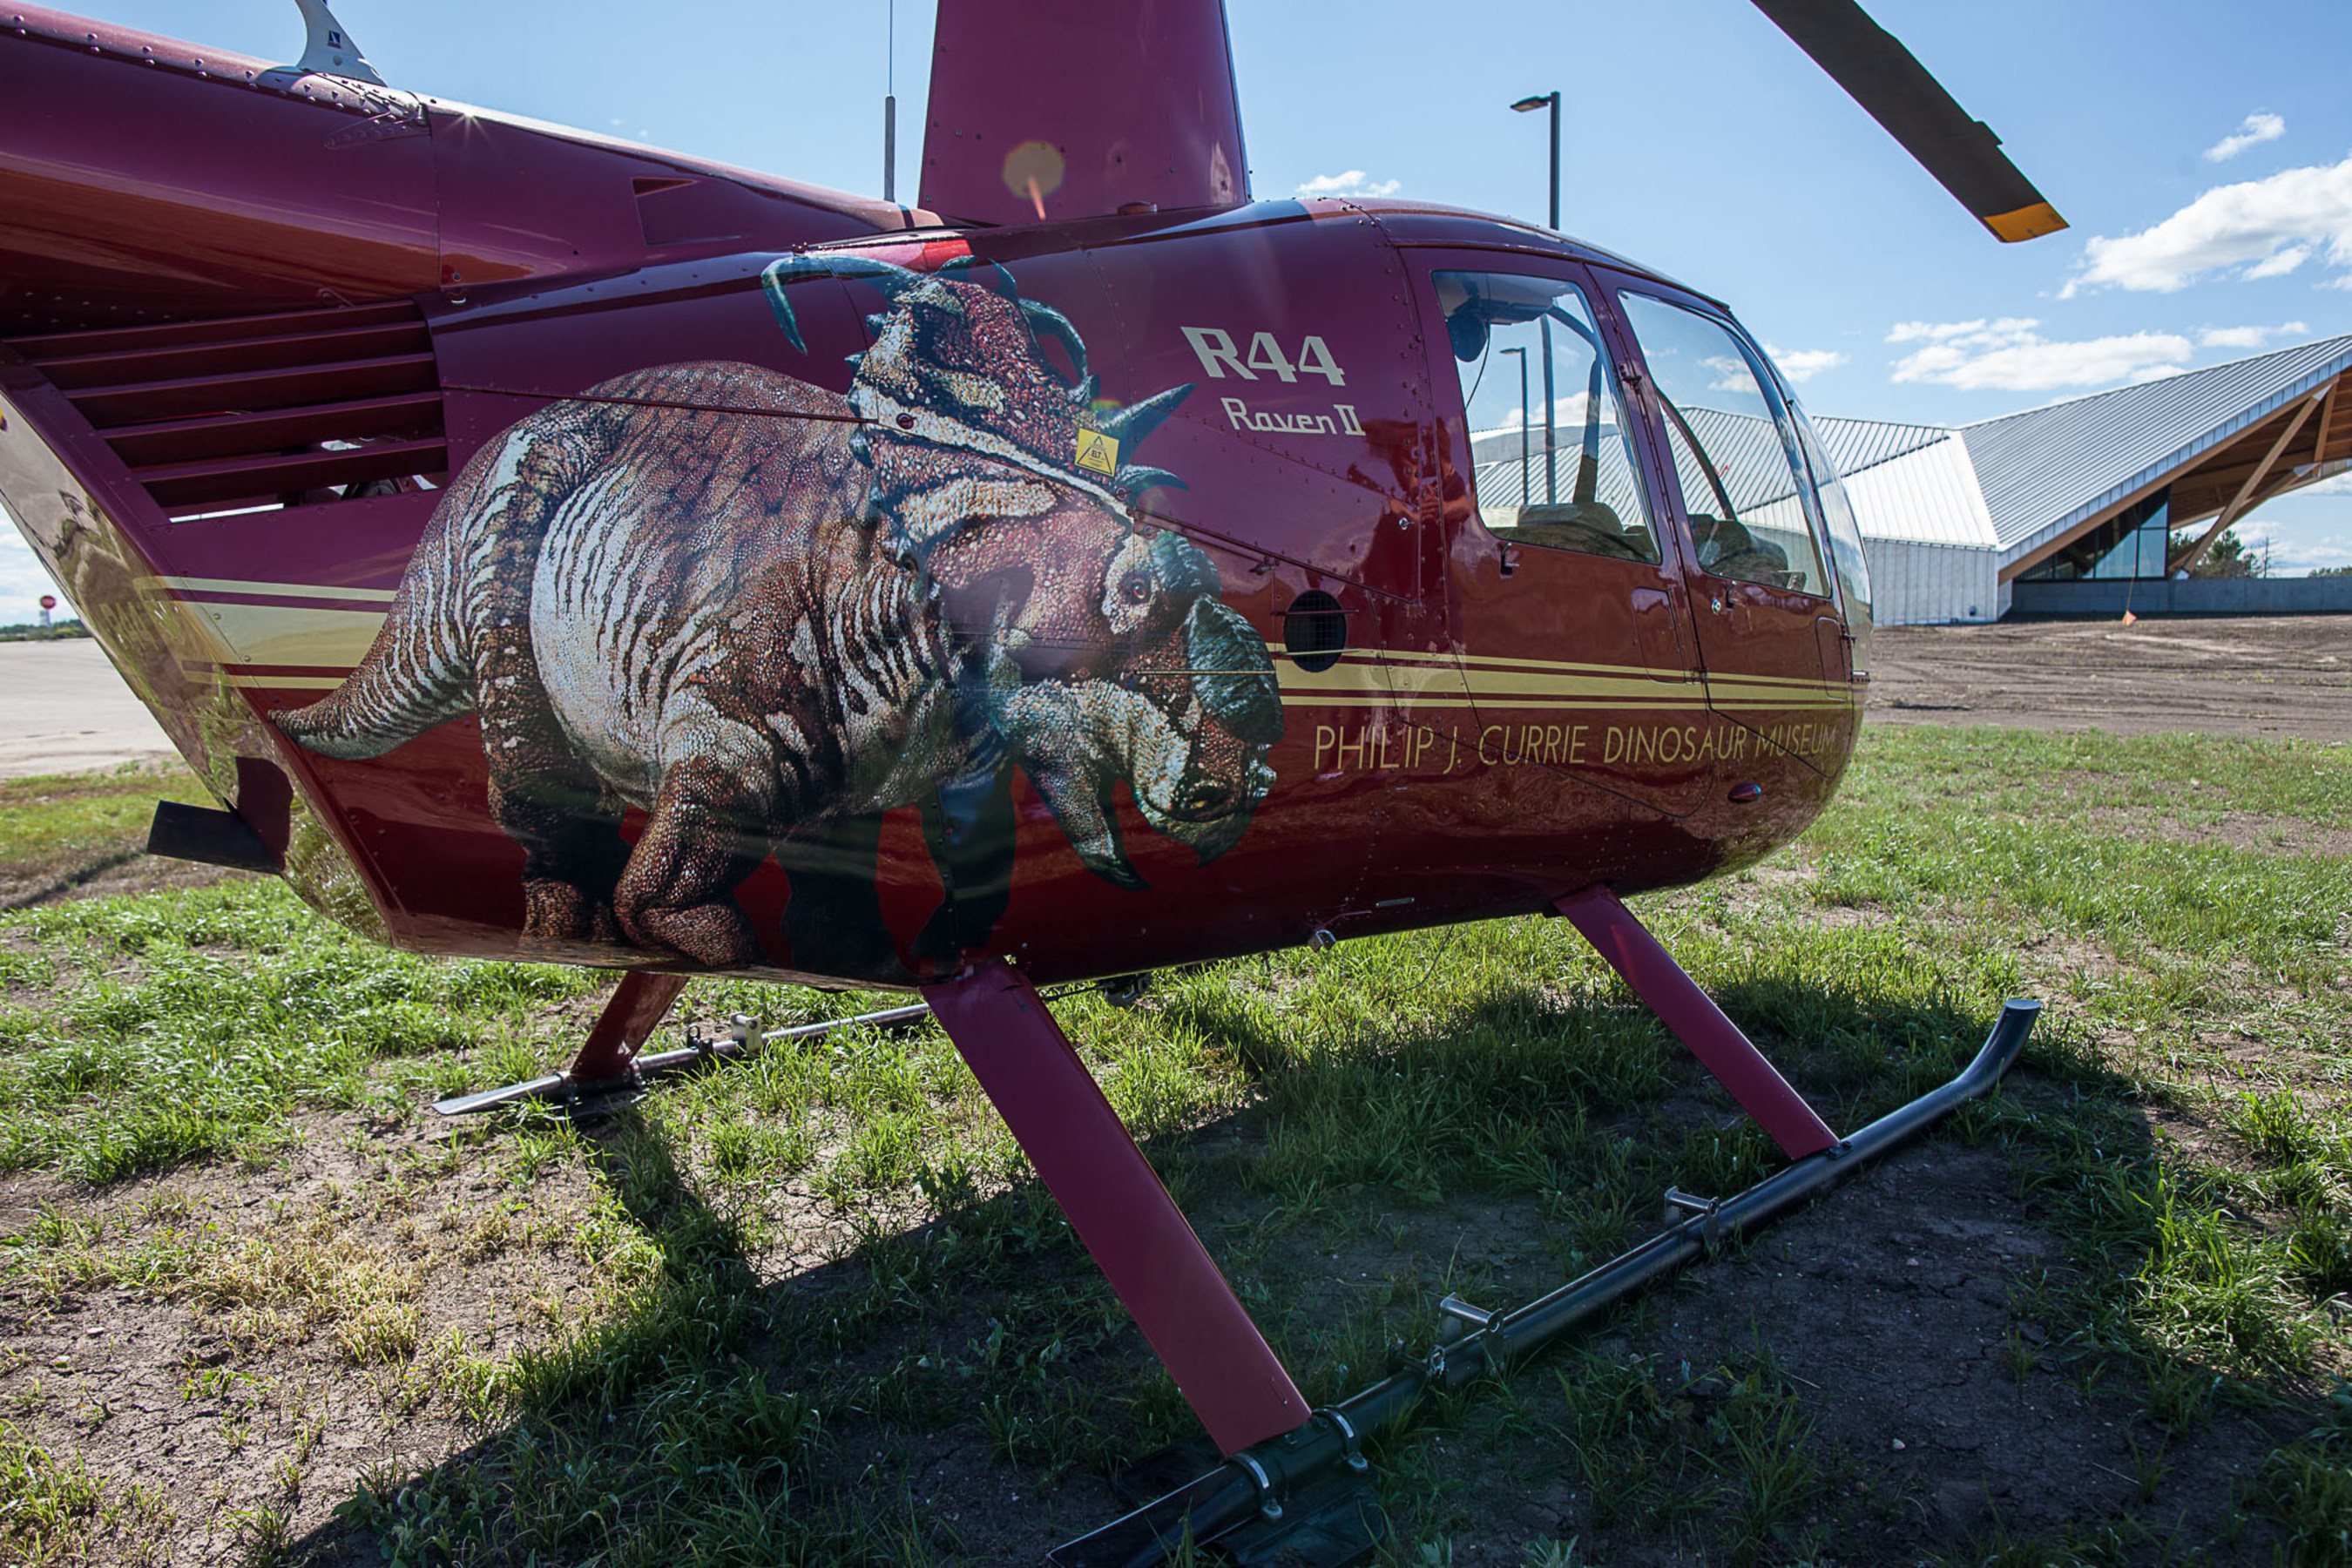 Philip J. Currie Dinosaur Museum Premiers Bone Bed Helicopter Tours